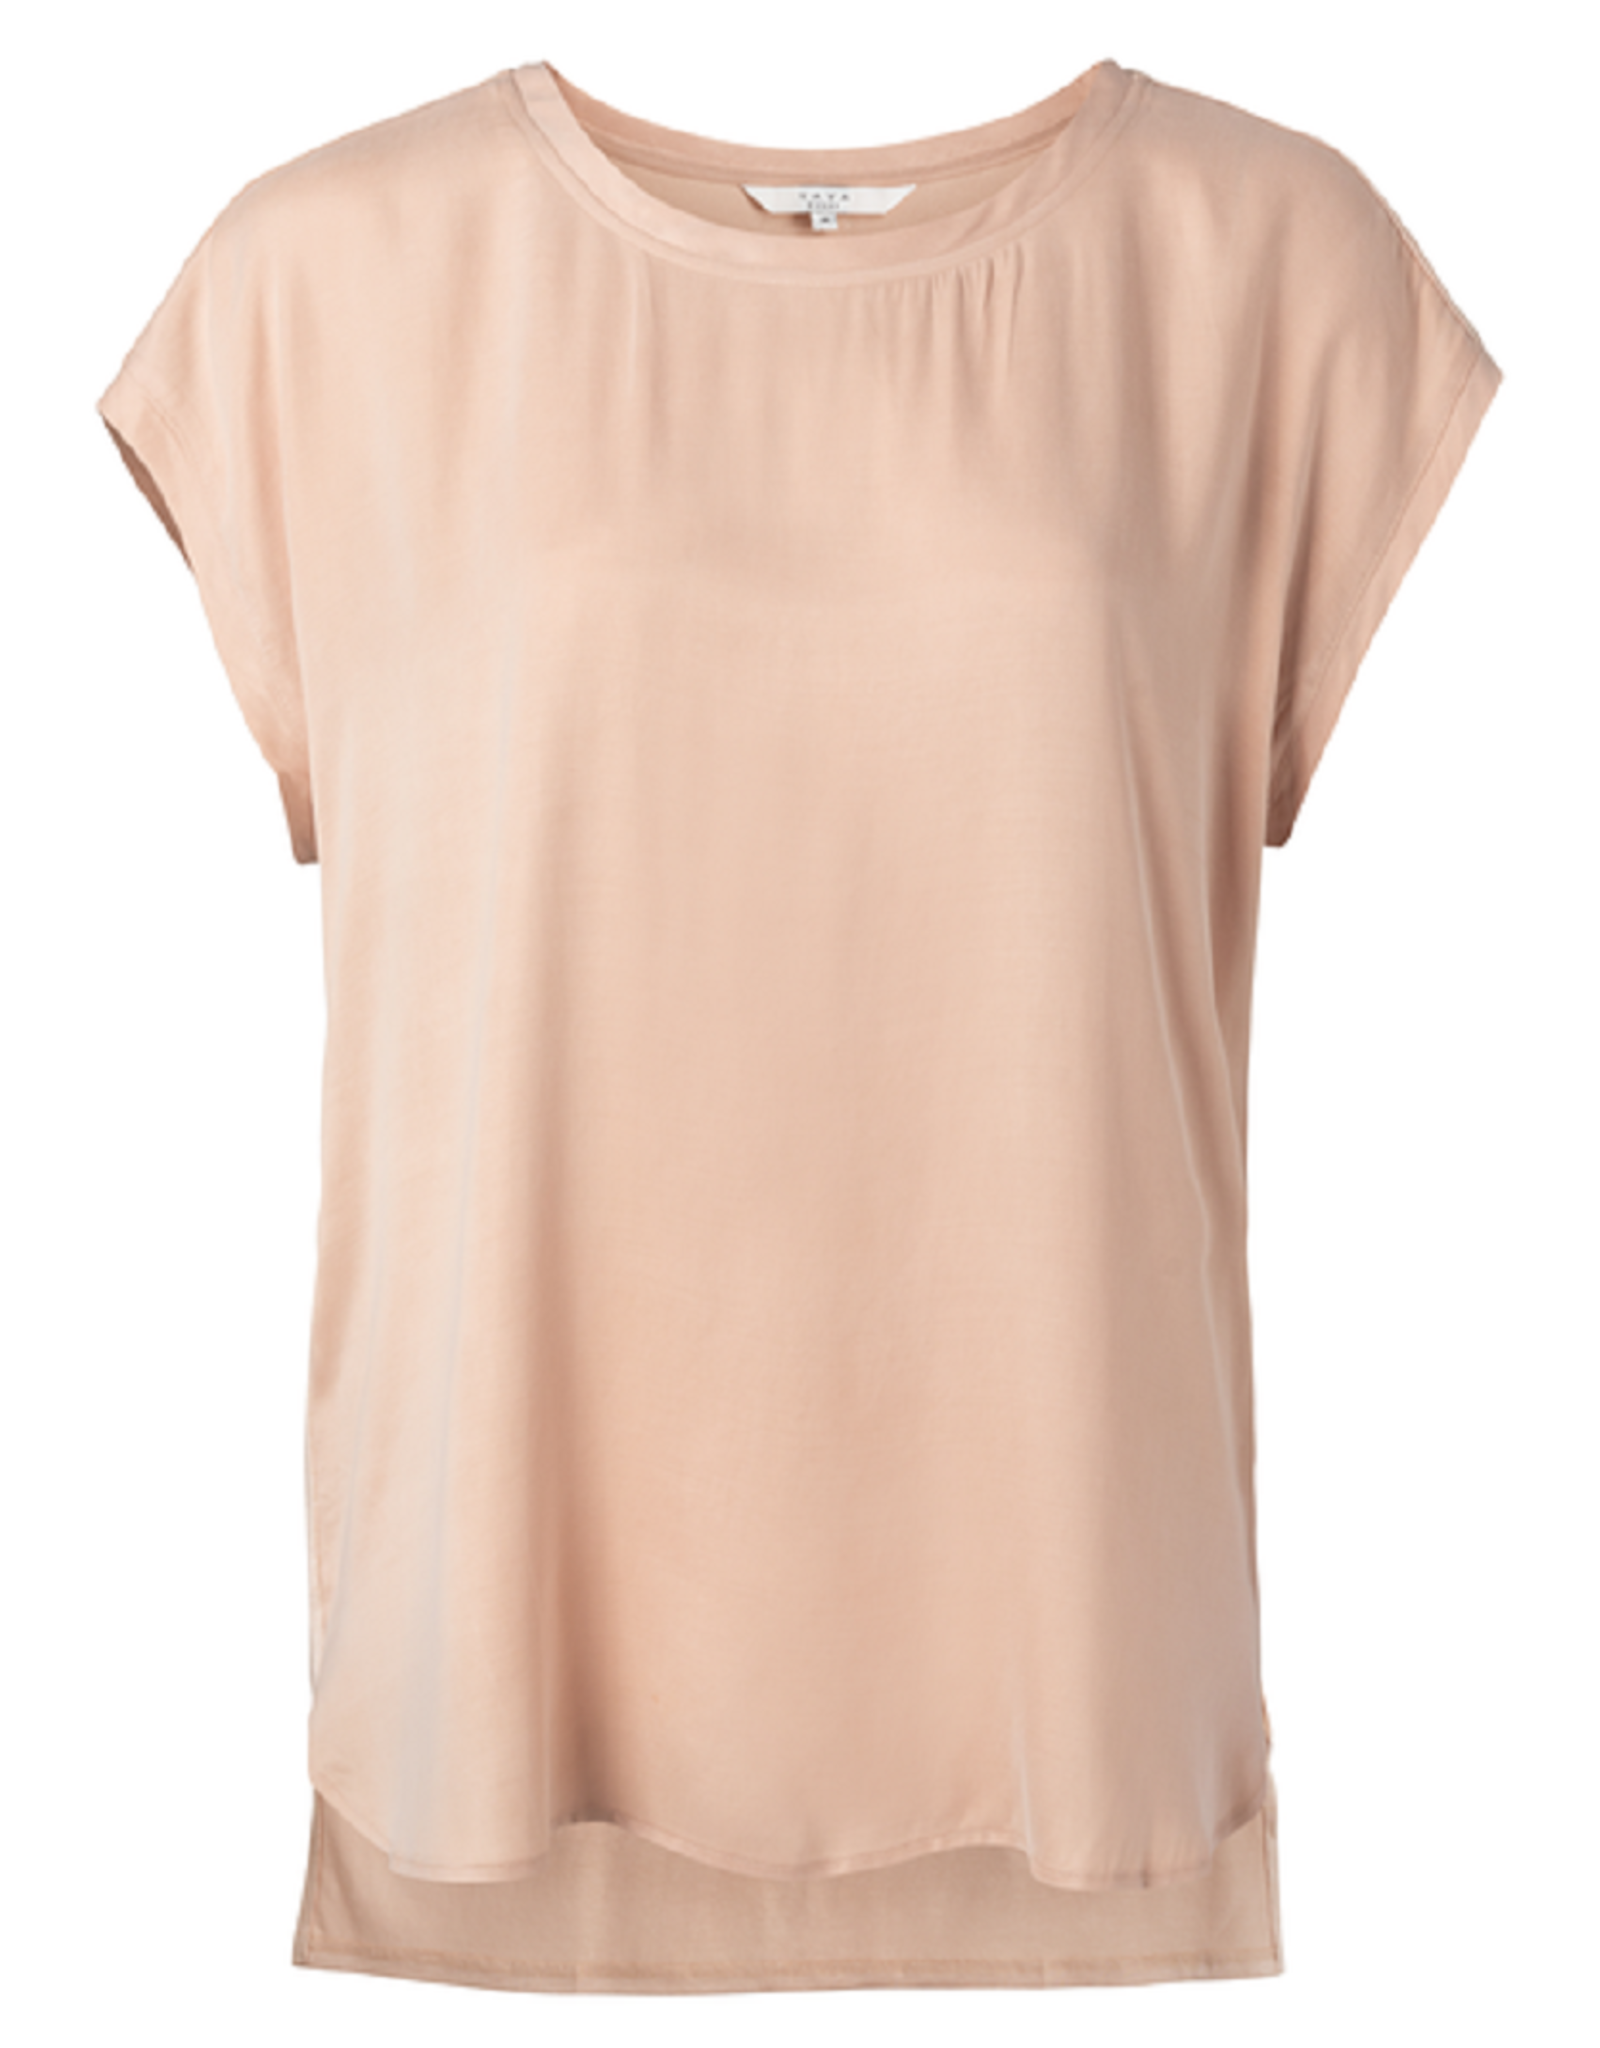 YAYA YAYA cupro blend fabric mix t-shirt faded rose